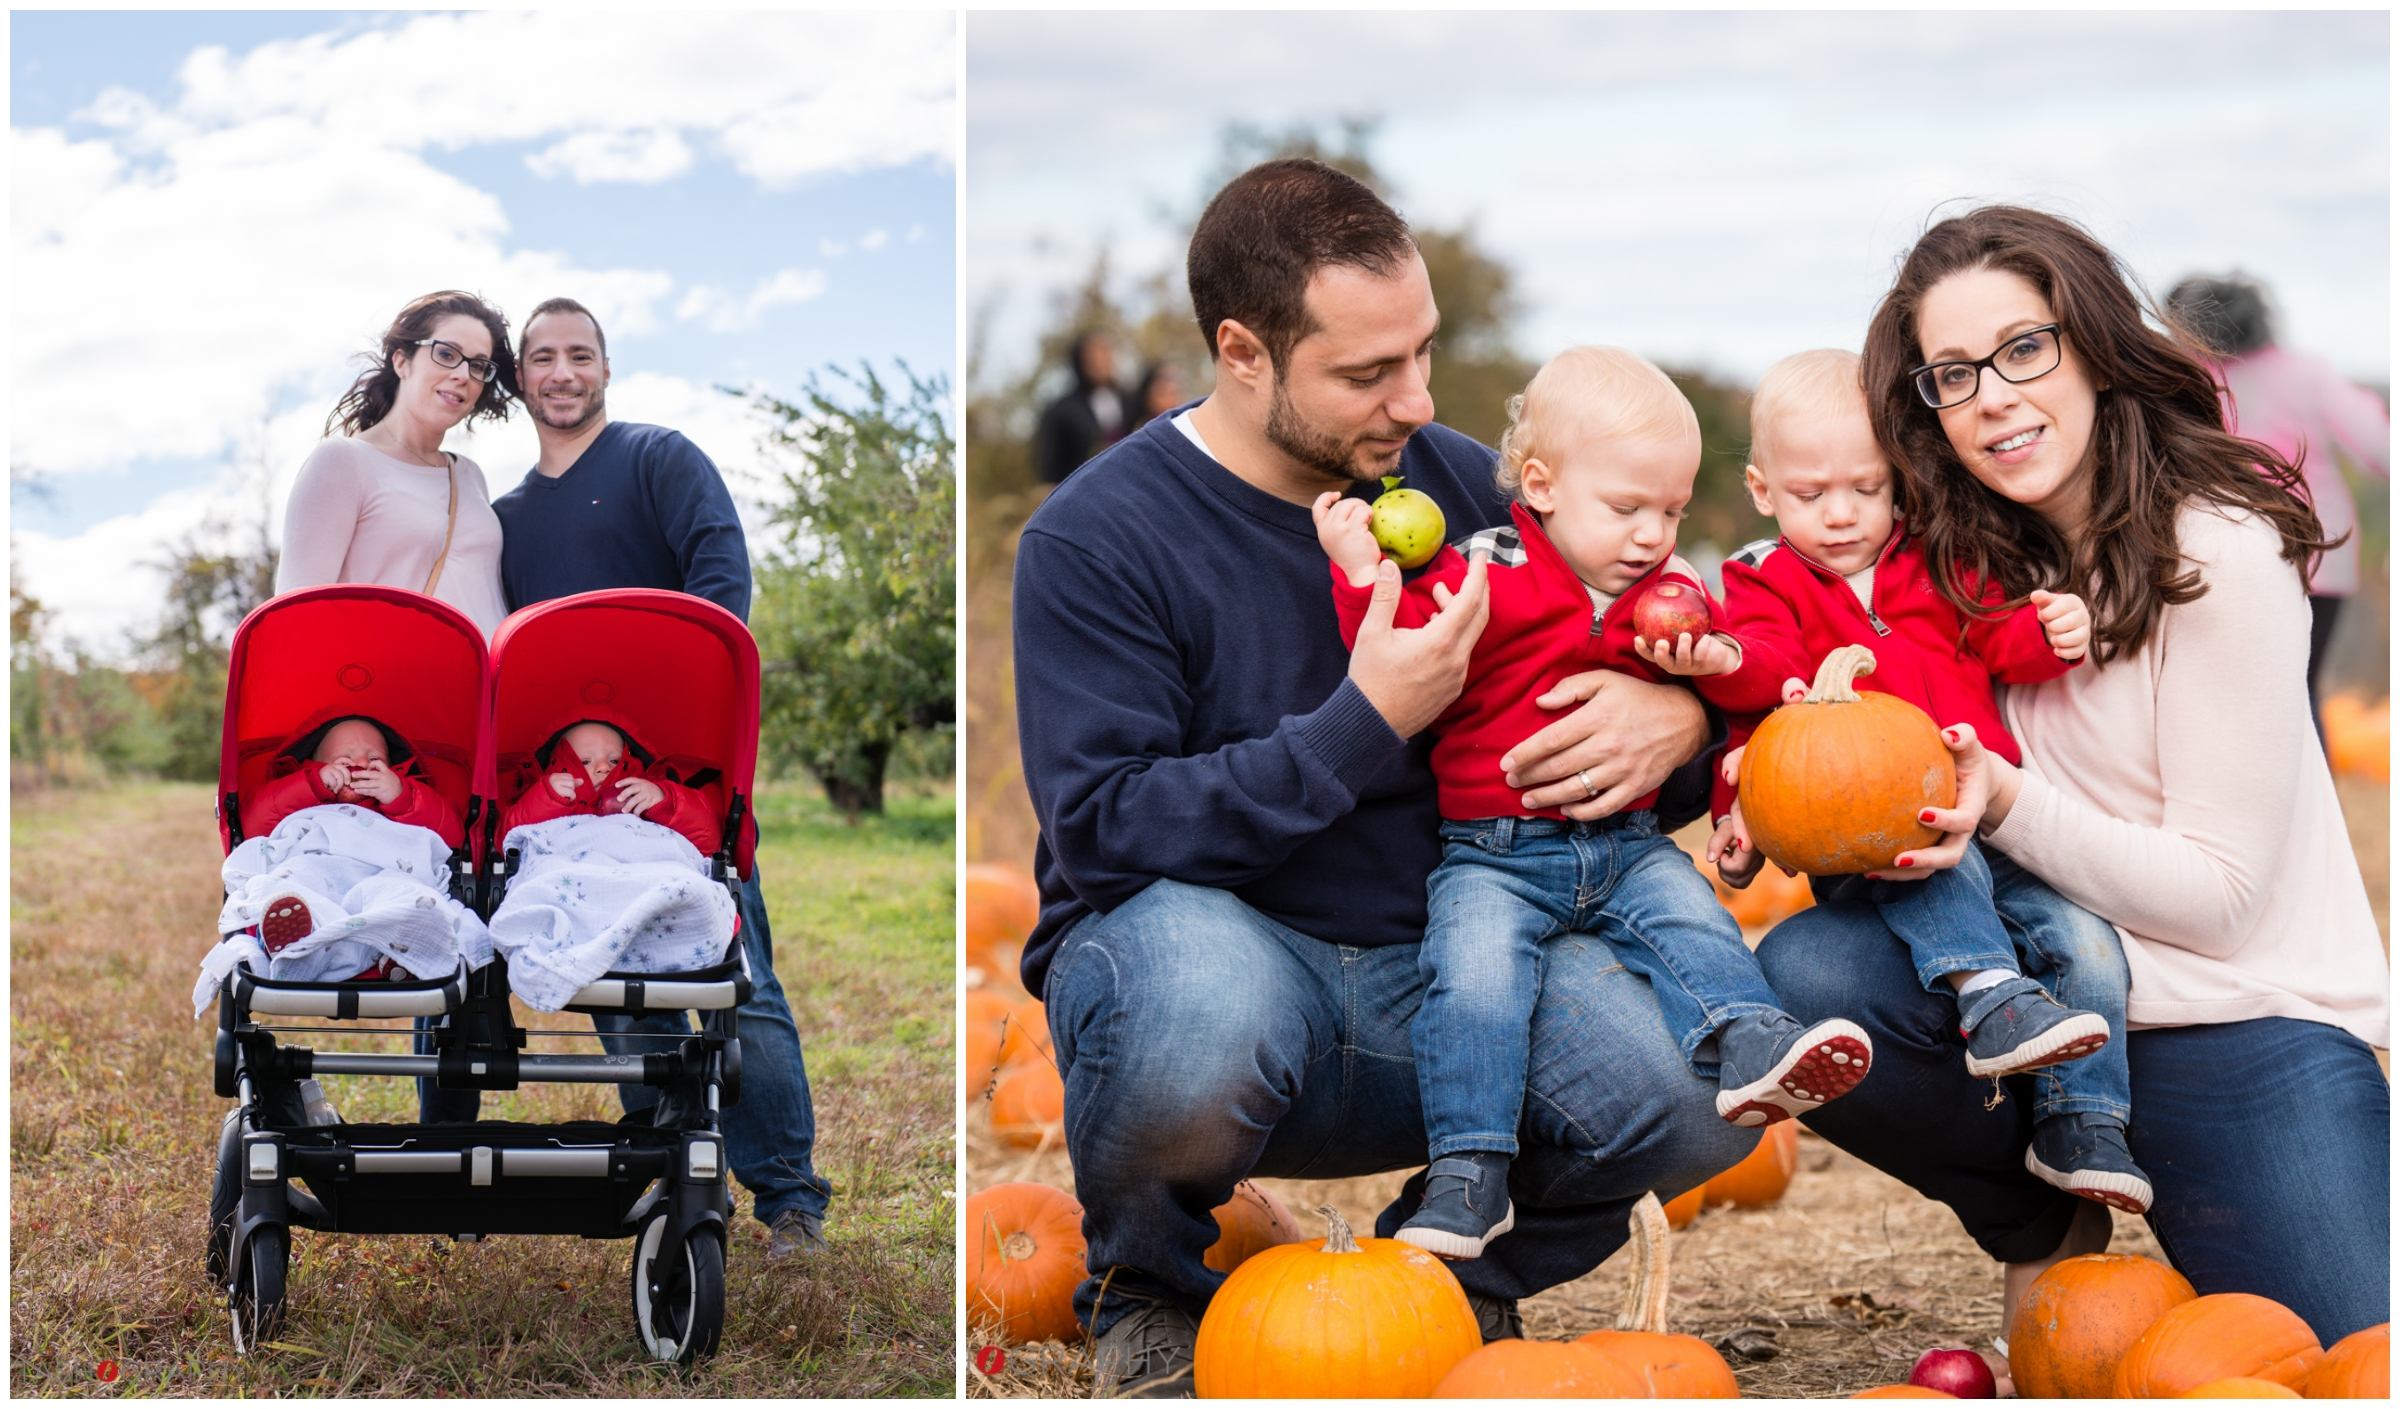 The Agnello Family's Fall Family Portraits at Wilkens Fruit and Fir Farm in Yorktown Heights, NY